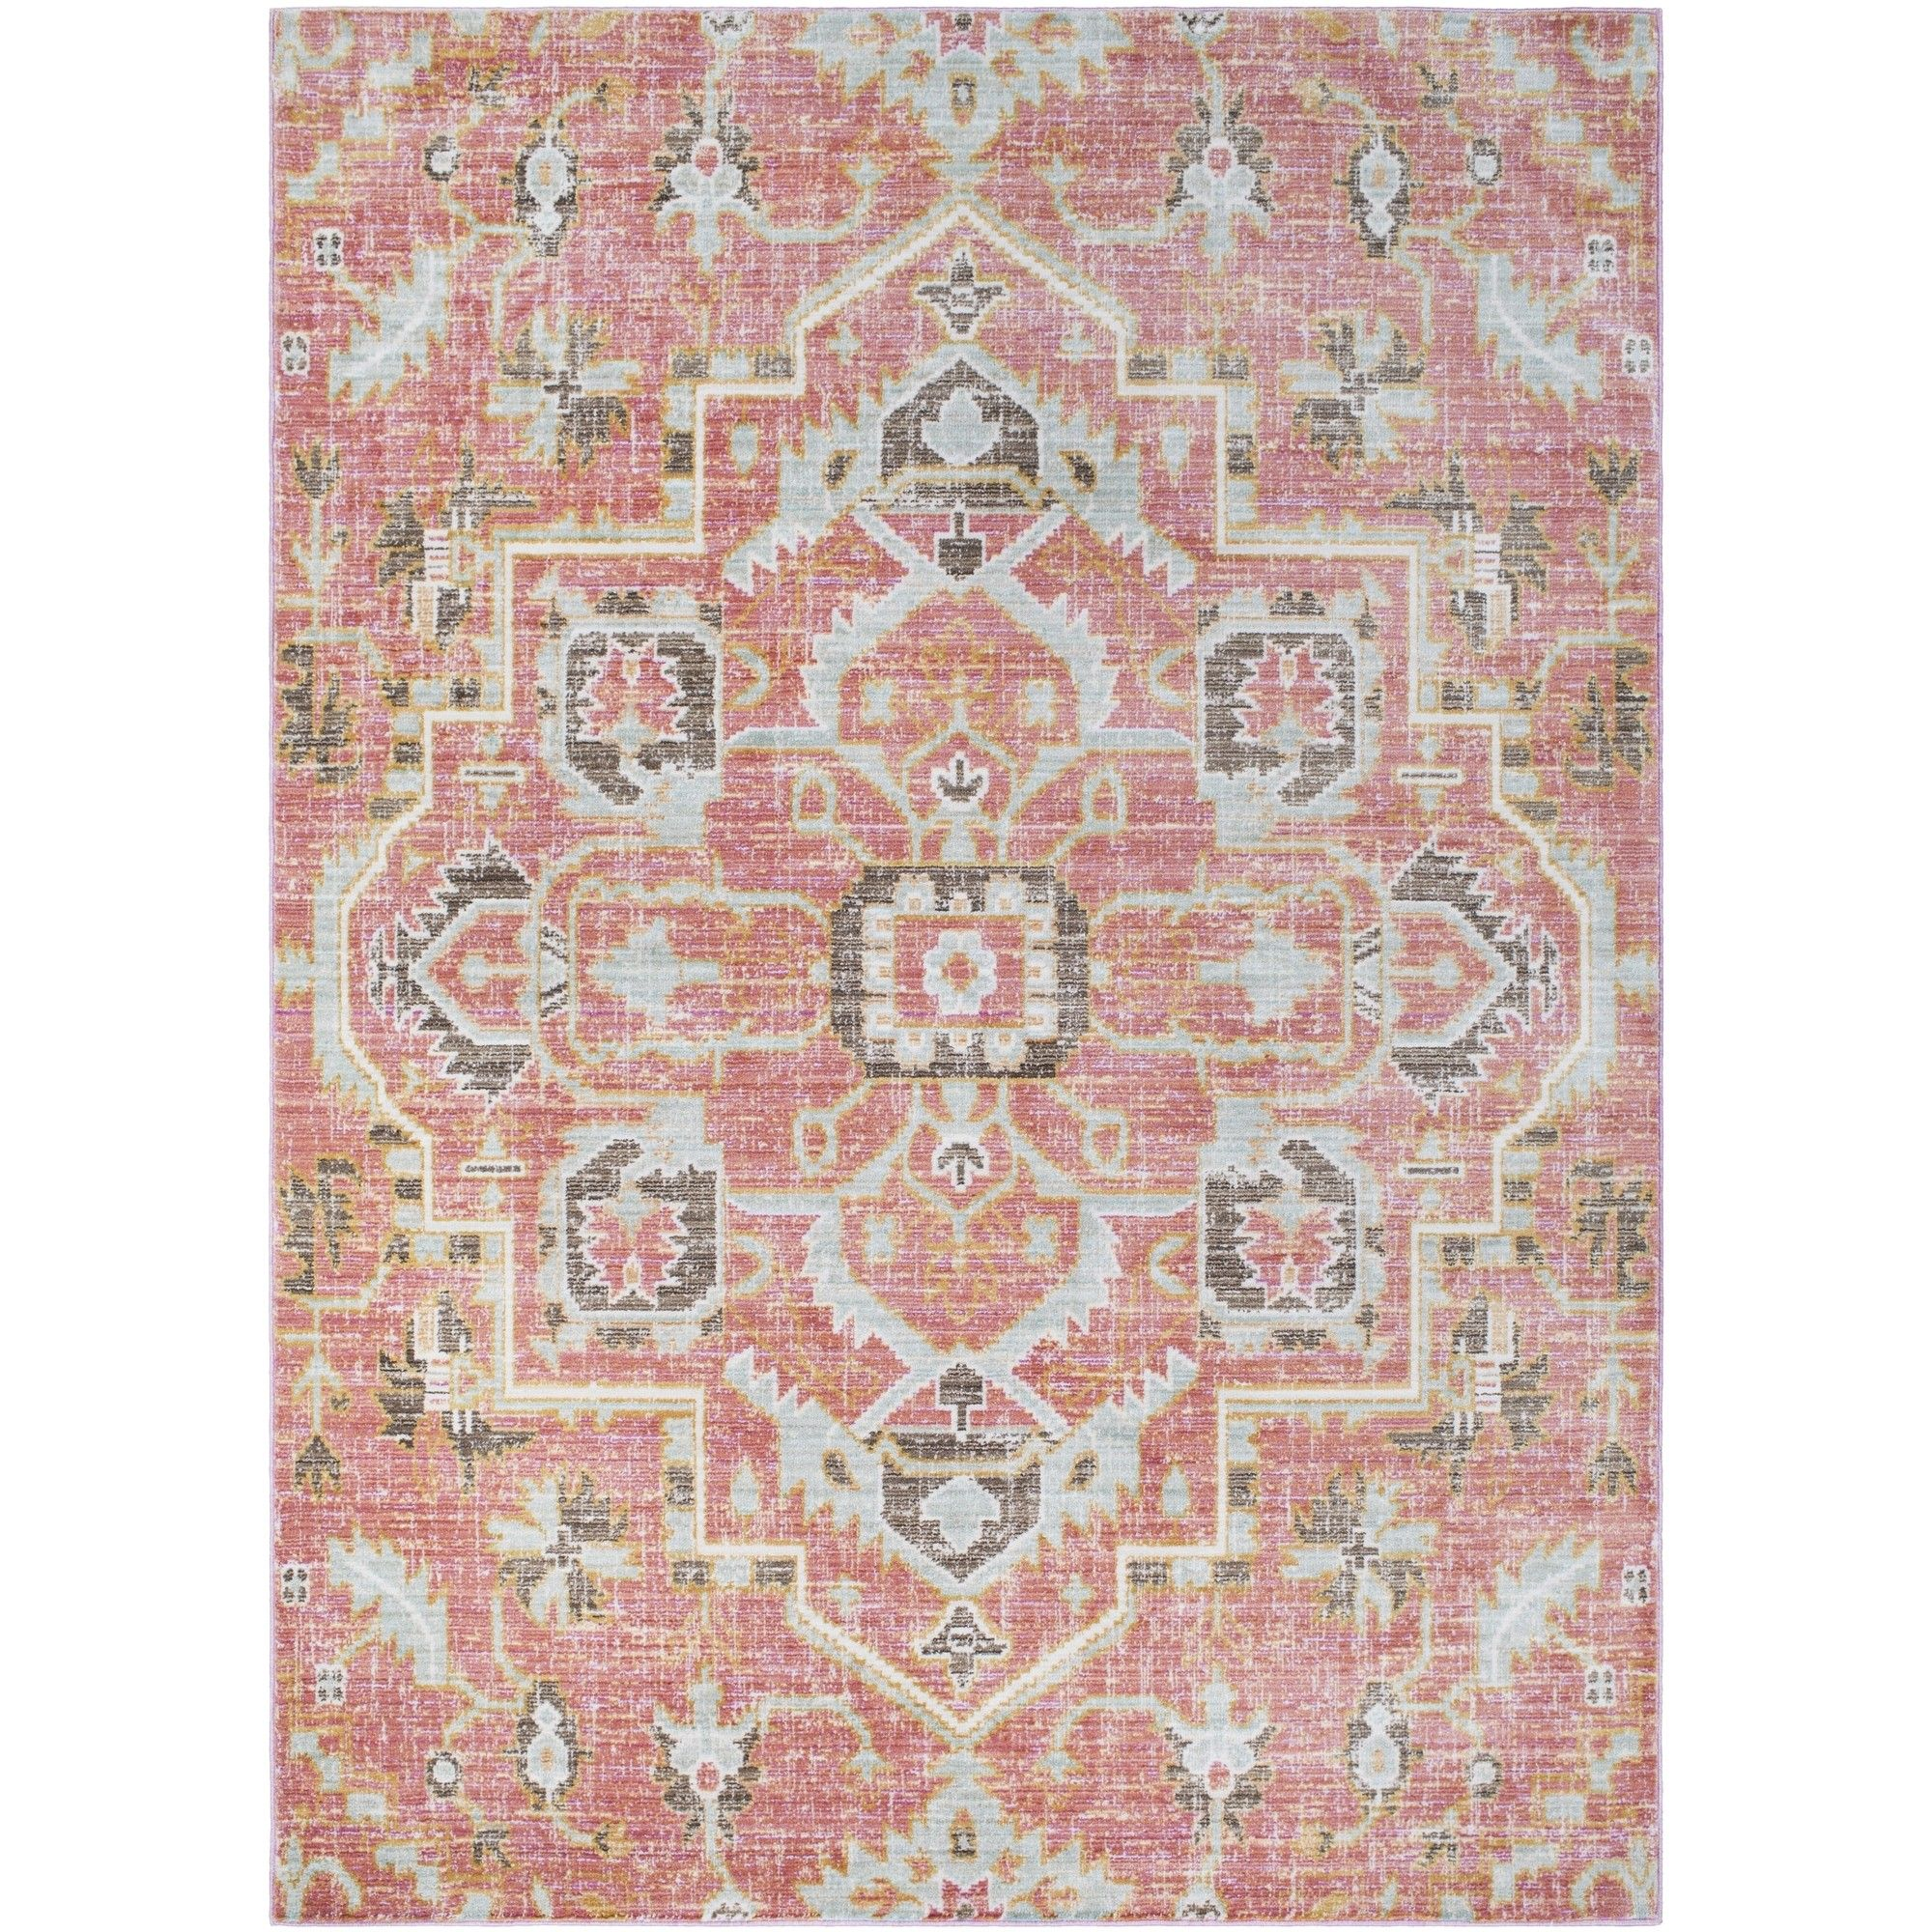 Feminine Bohemian Vibes And Bold Vivid Hues Make Our Anamura Rug A Stunning Piece For Your Floor Pair With A Collection Of E Pink Rug Area Rugs Pink Area Rug